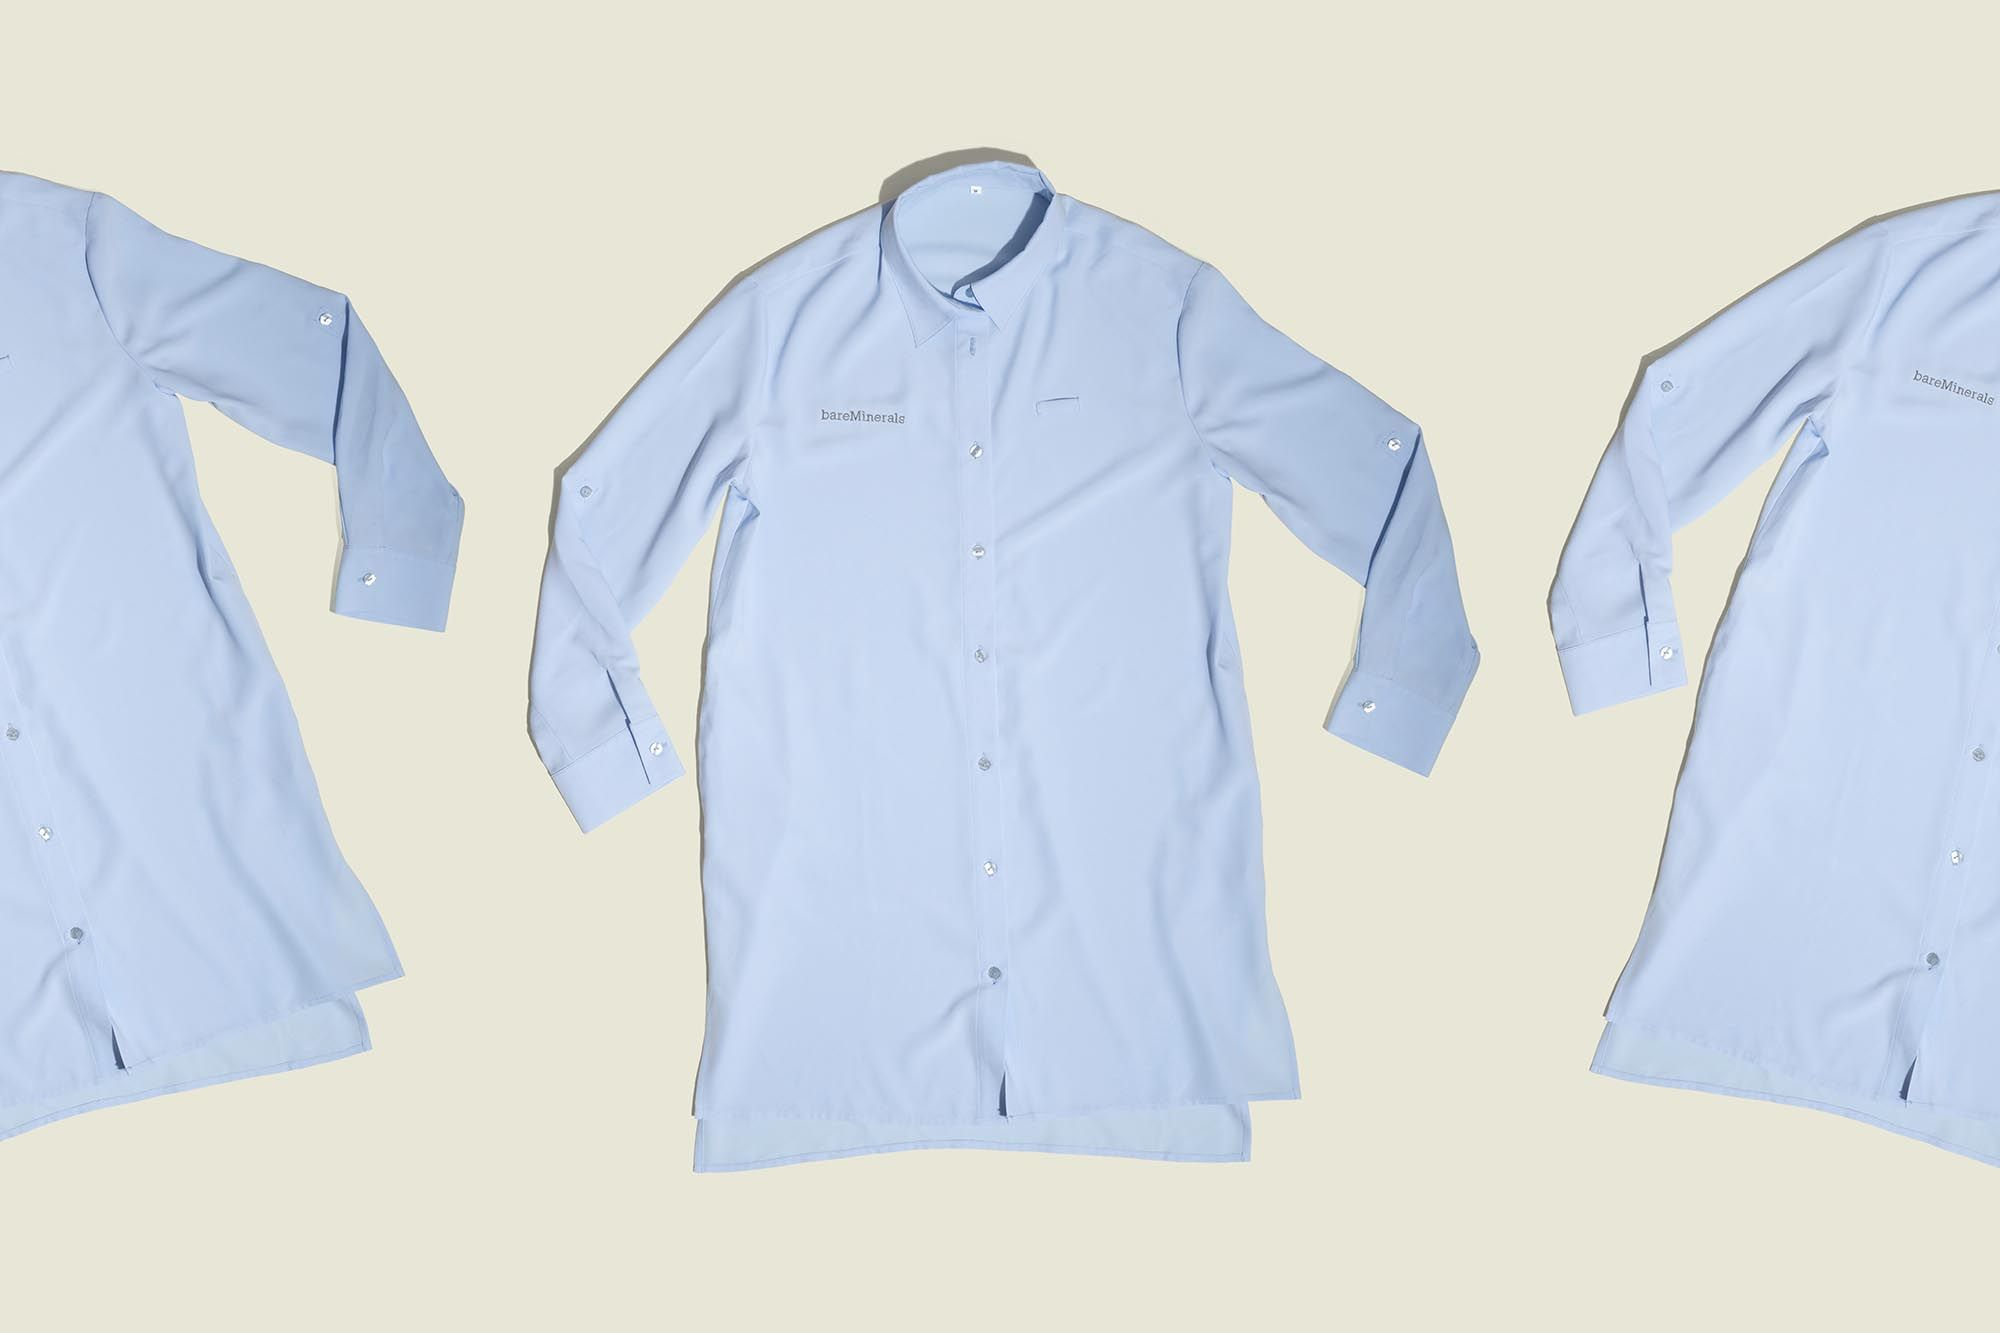 Long sleeved button down shirts